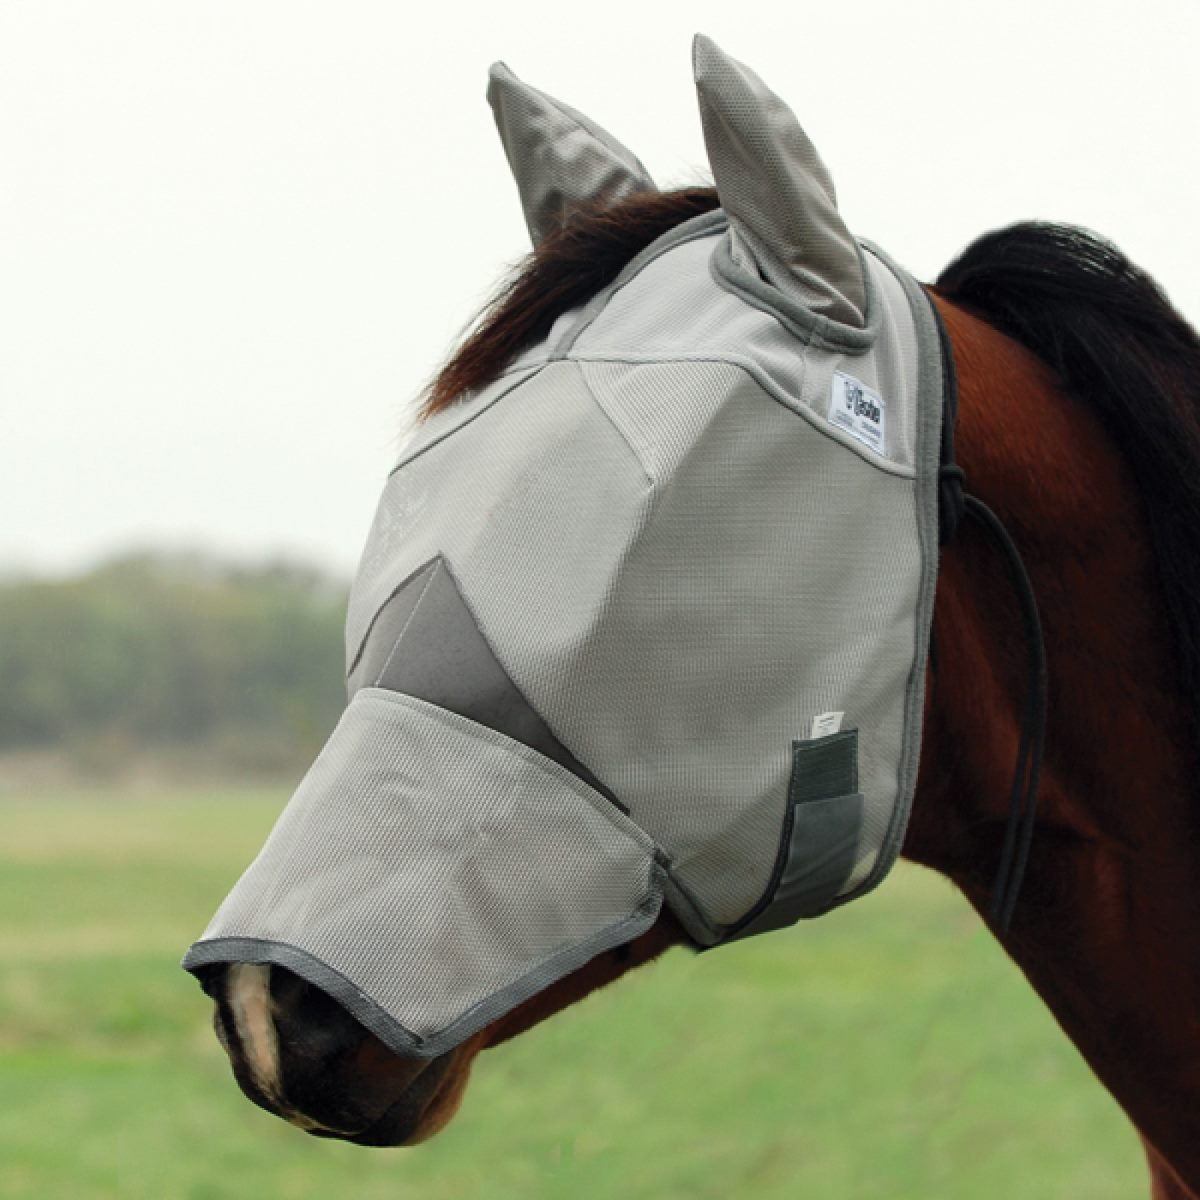 Cool Fly Mask Long Nose With Ears